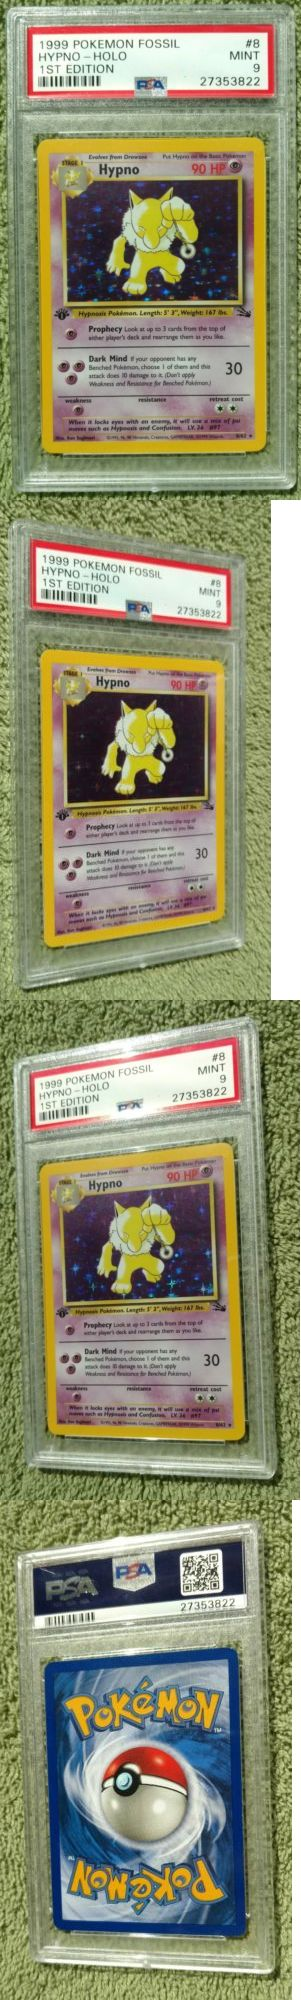 Pok mon Individual Cards 2611: Psa 9 Mint Hypno 8 62 1St Edition Holo Rare 1999 Wizards Fossil Pokemon Card -> BUY IT NOW ONLY: $40 on eBay!